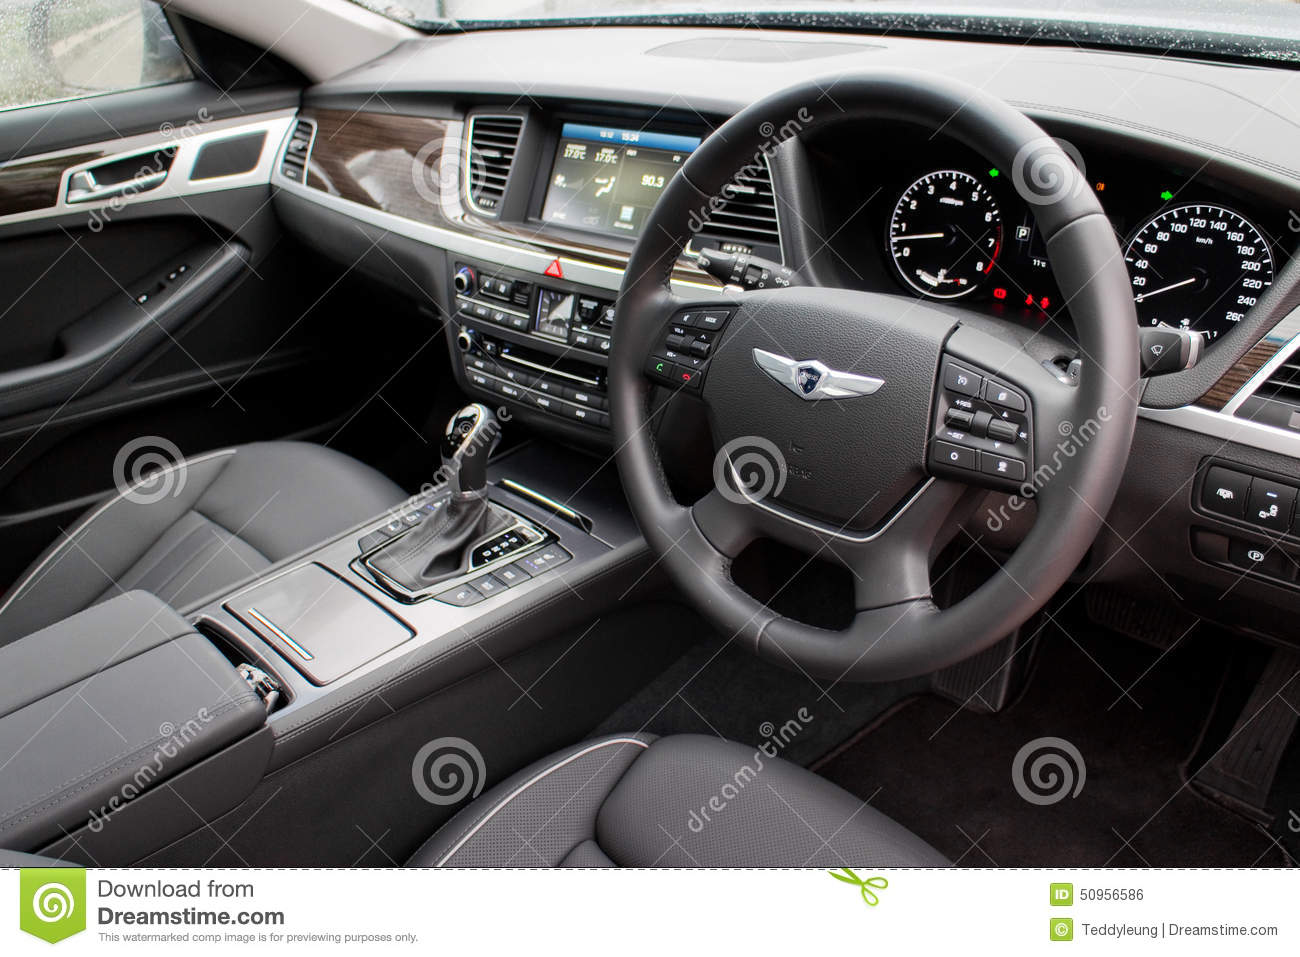 Download Hyundai GENESIS 2015 Interior Editorial Photo   Image Of Modern,  Vehicle: 50956586